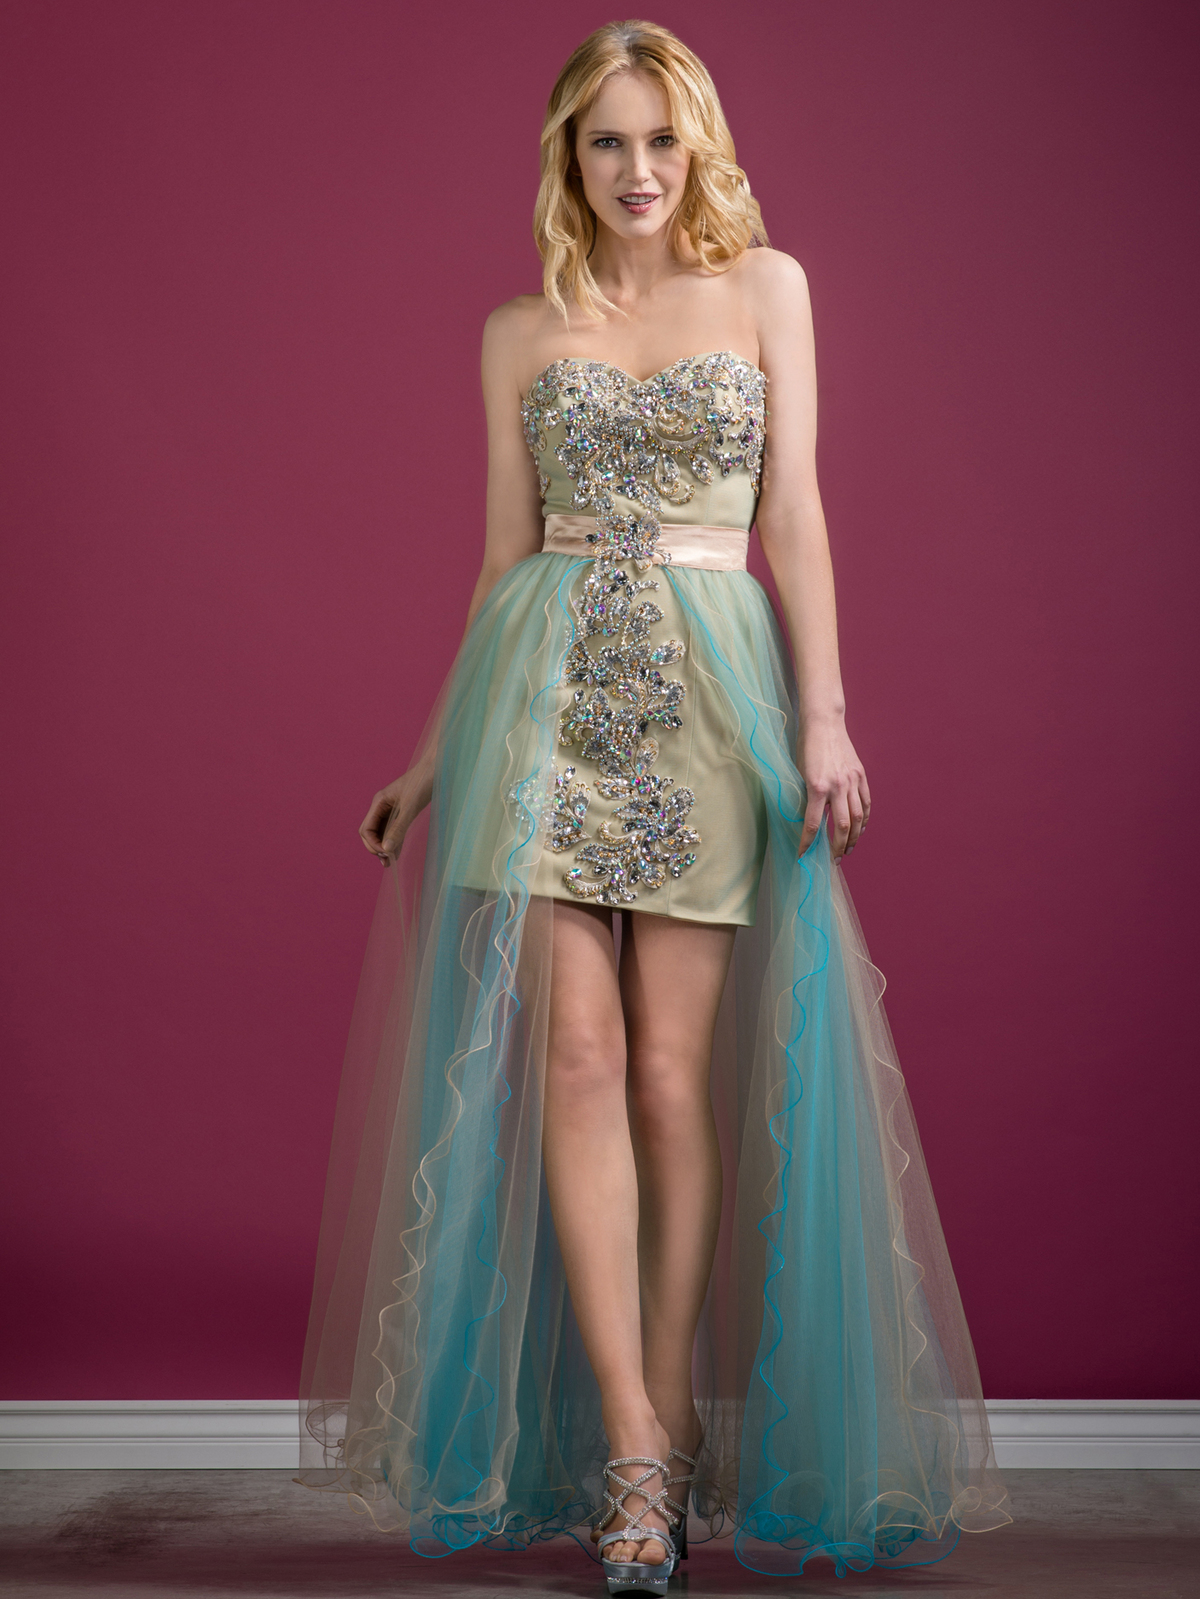 Jeweled Sweetheart Prom Dress | Sung Boutique L.A.